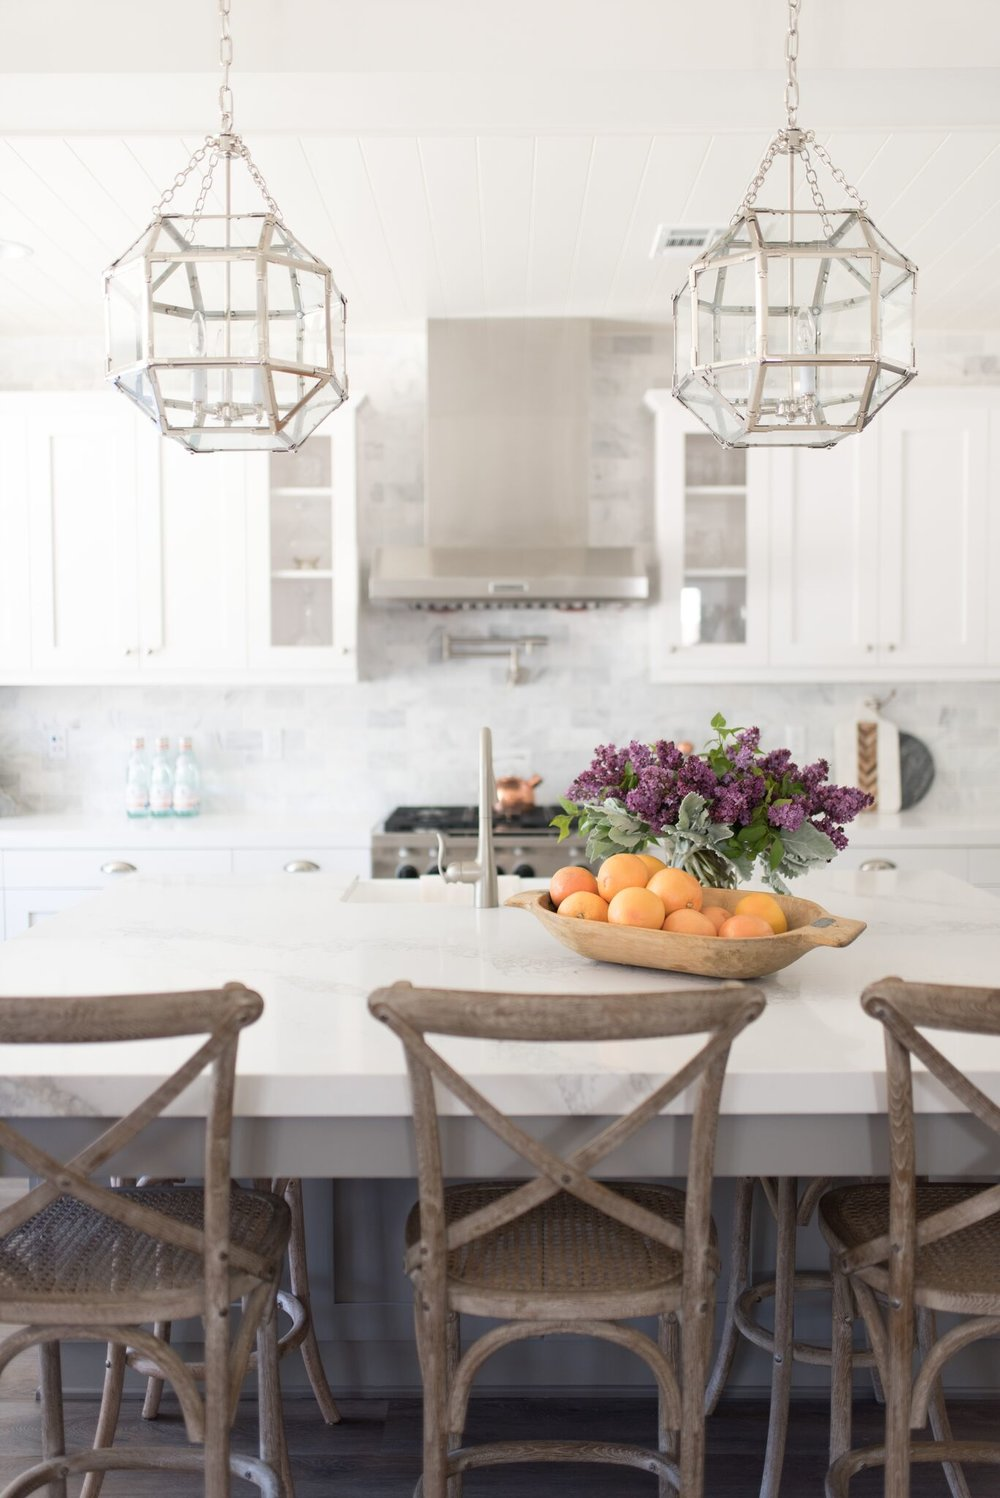 Design: Pure Salt Interiors, Photo: Steph Anderson Photography